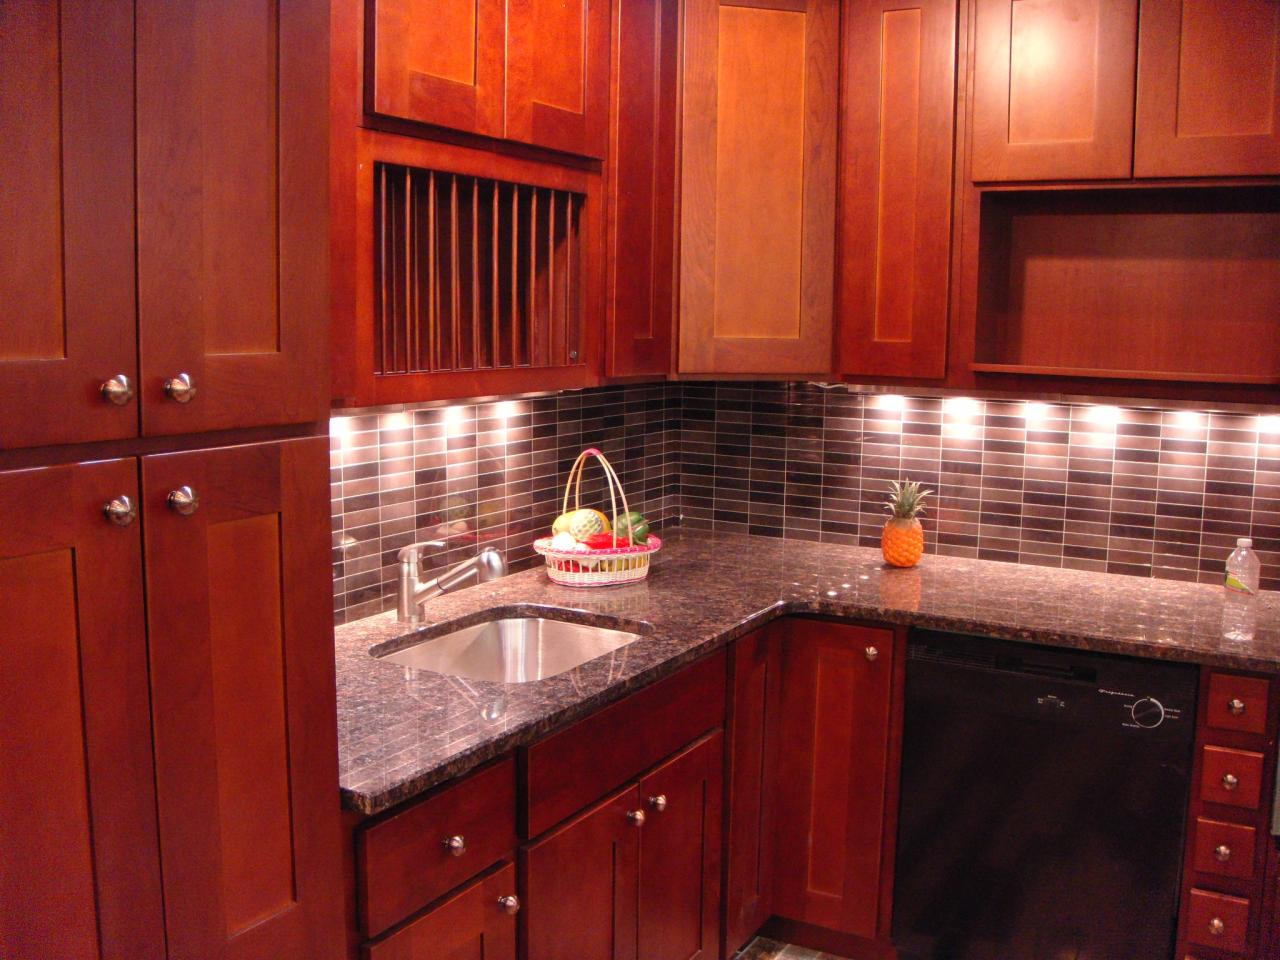 Cherry shaker kitchen cabinets home furniture design for Cherry kitchen cabinets